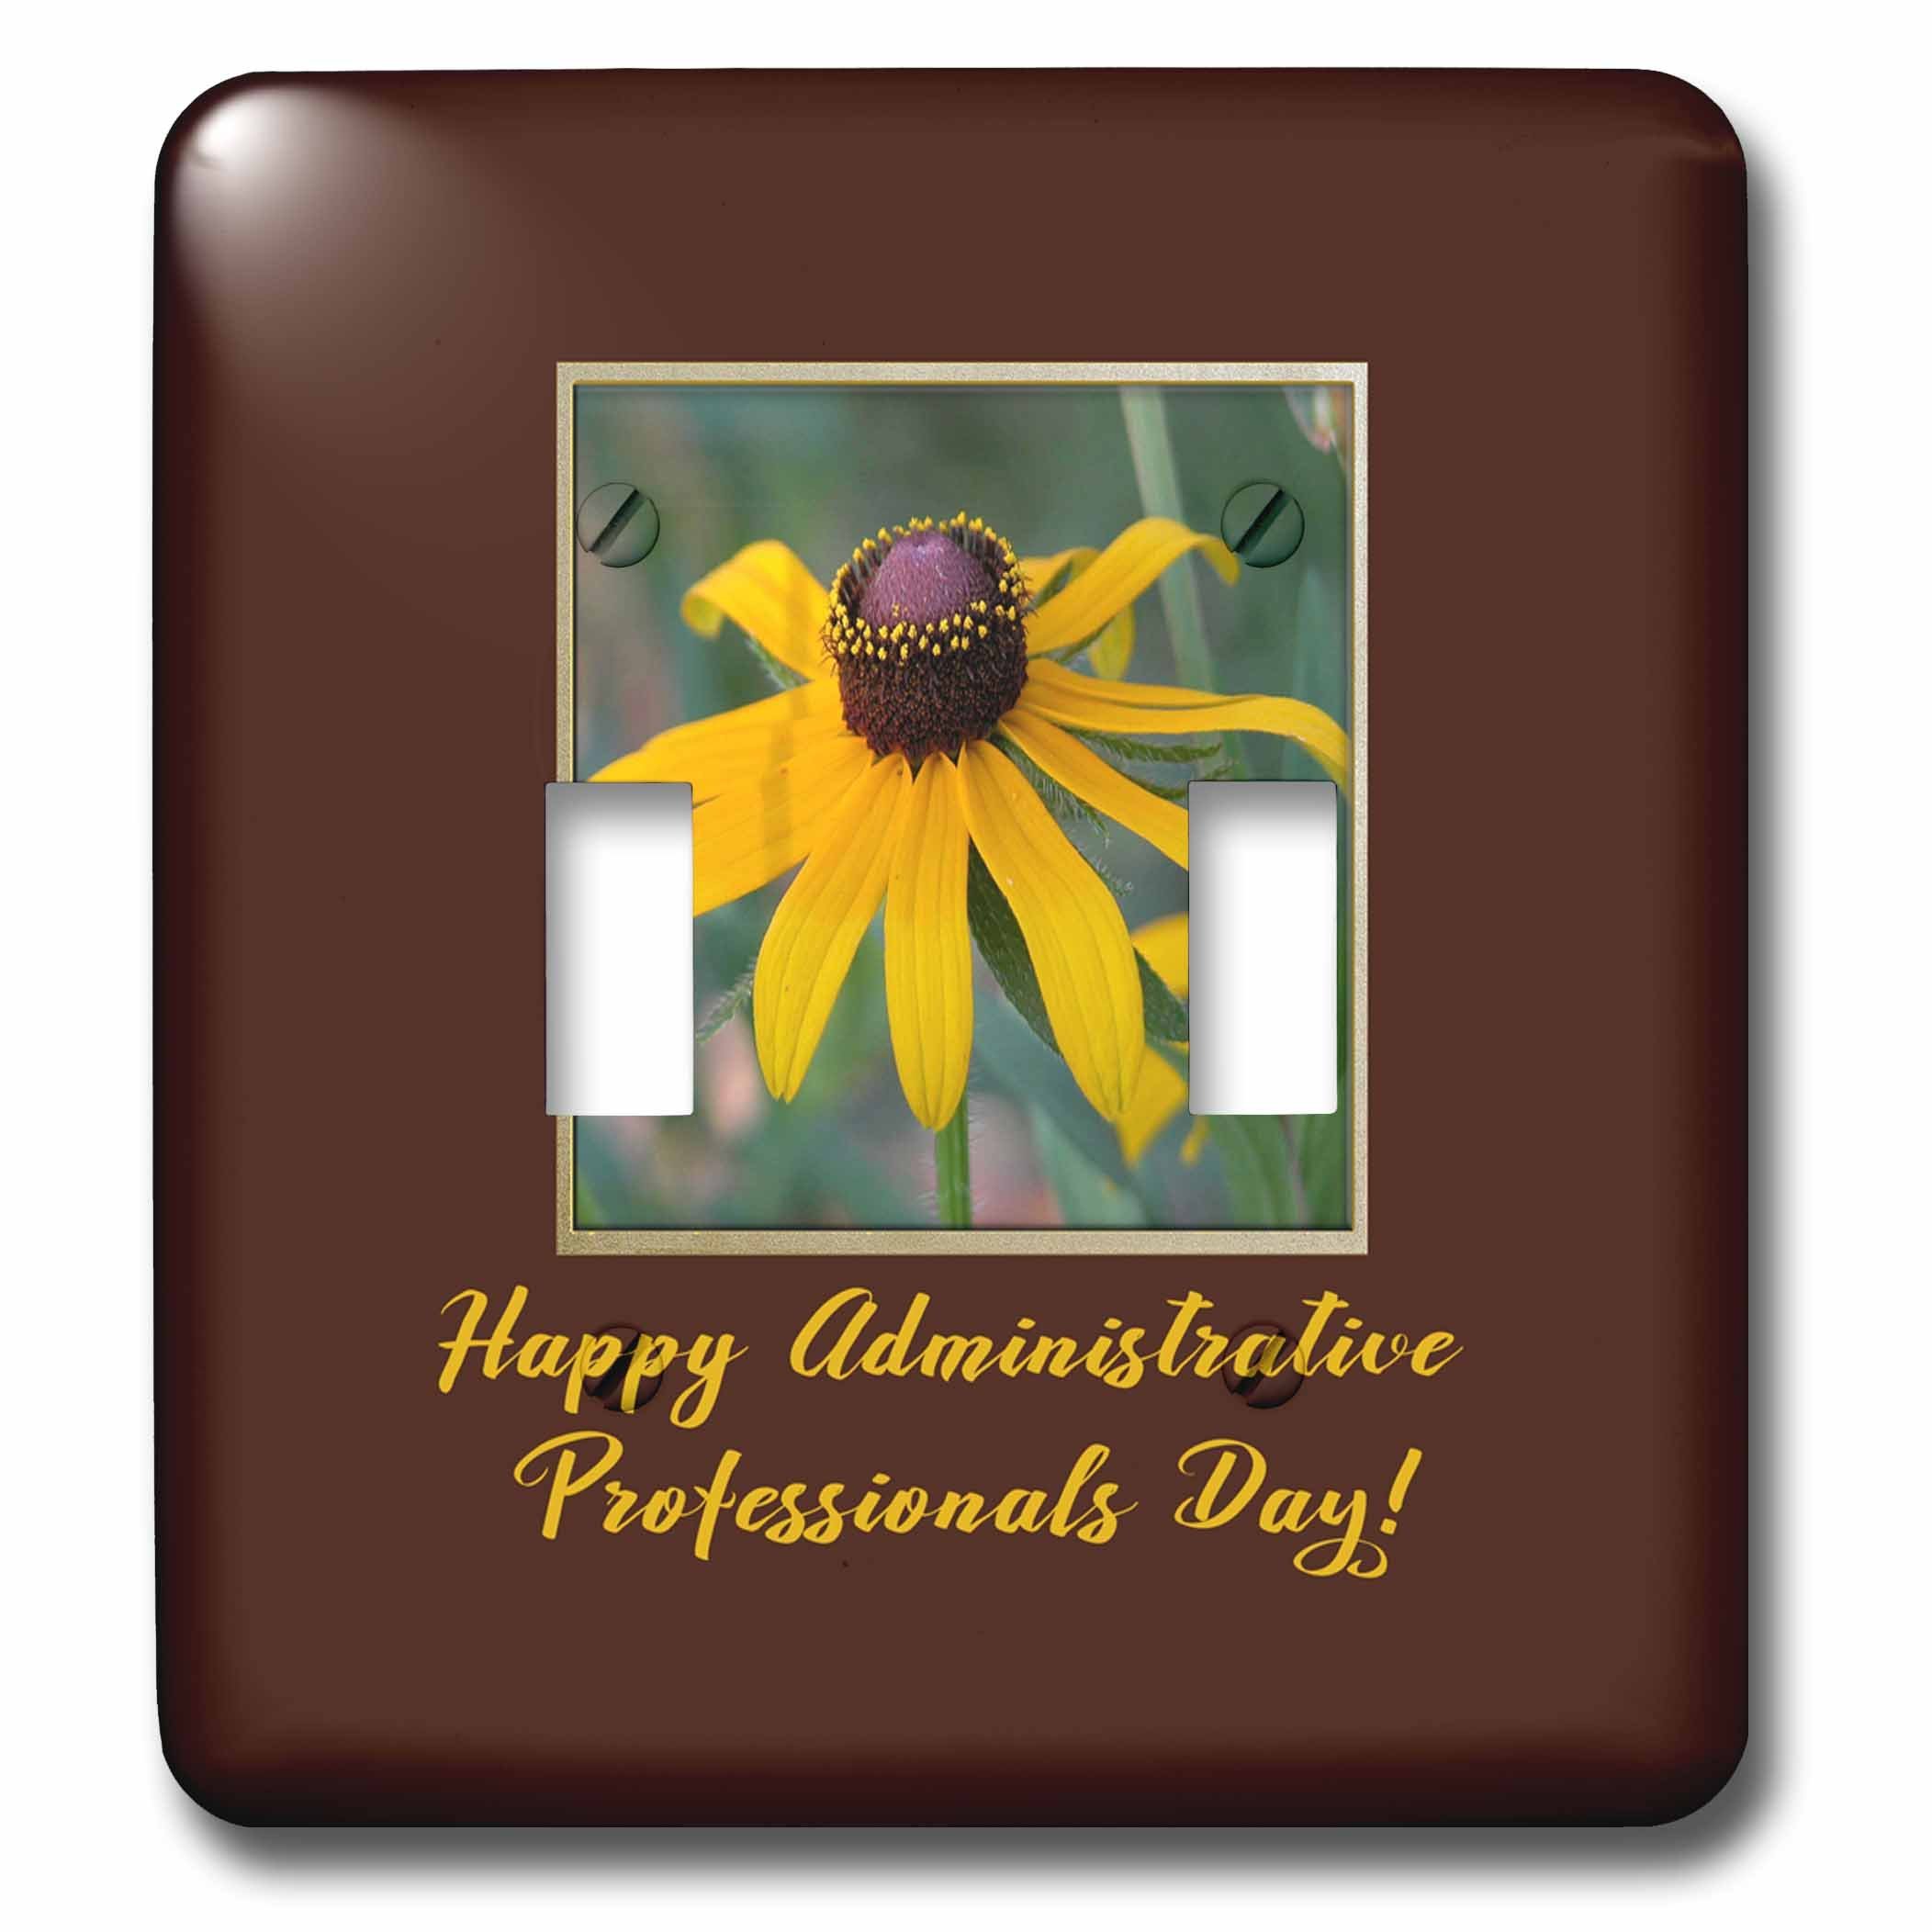 3dRose Beverly Turner Administrative Professionals Day - Administrative Professionals Day, Blacked Eyed Susan Flower, Frame - Light Switch Covers - double toggle switch (lsp_282192_2)